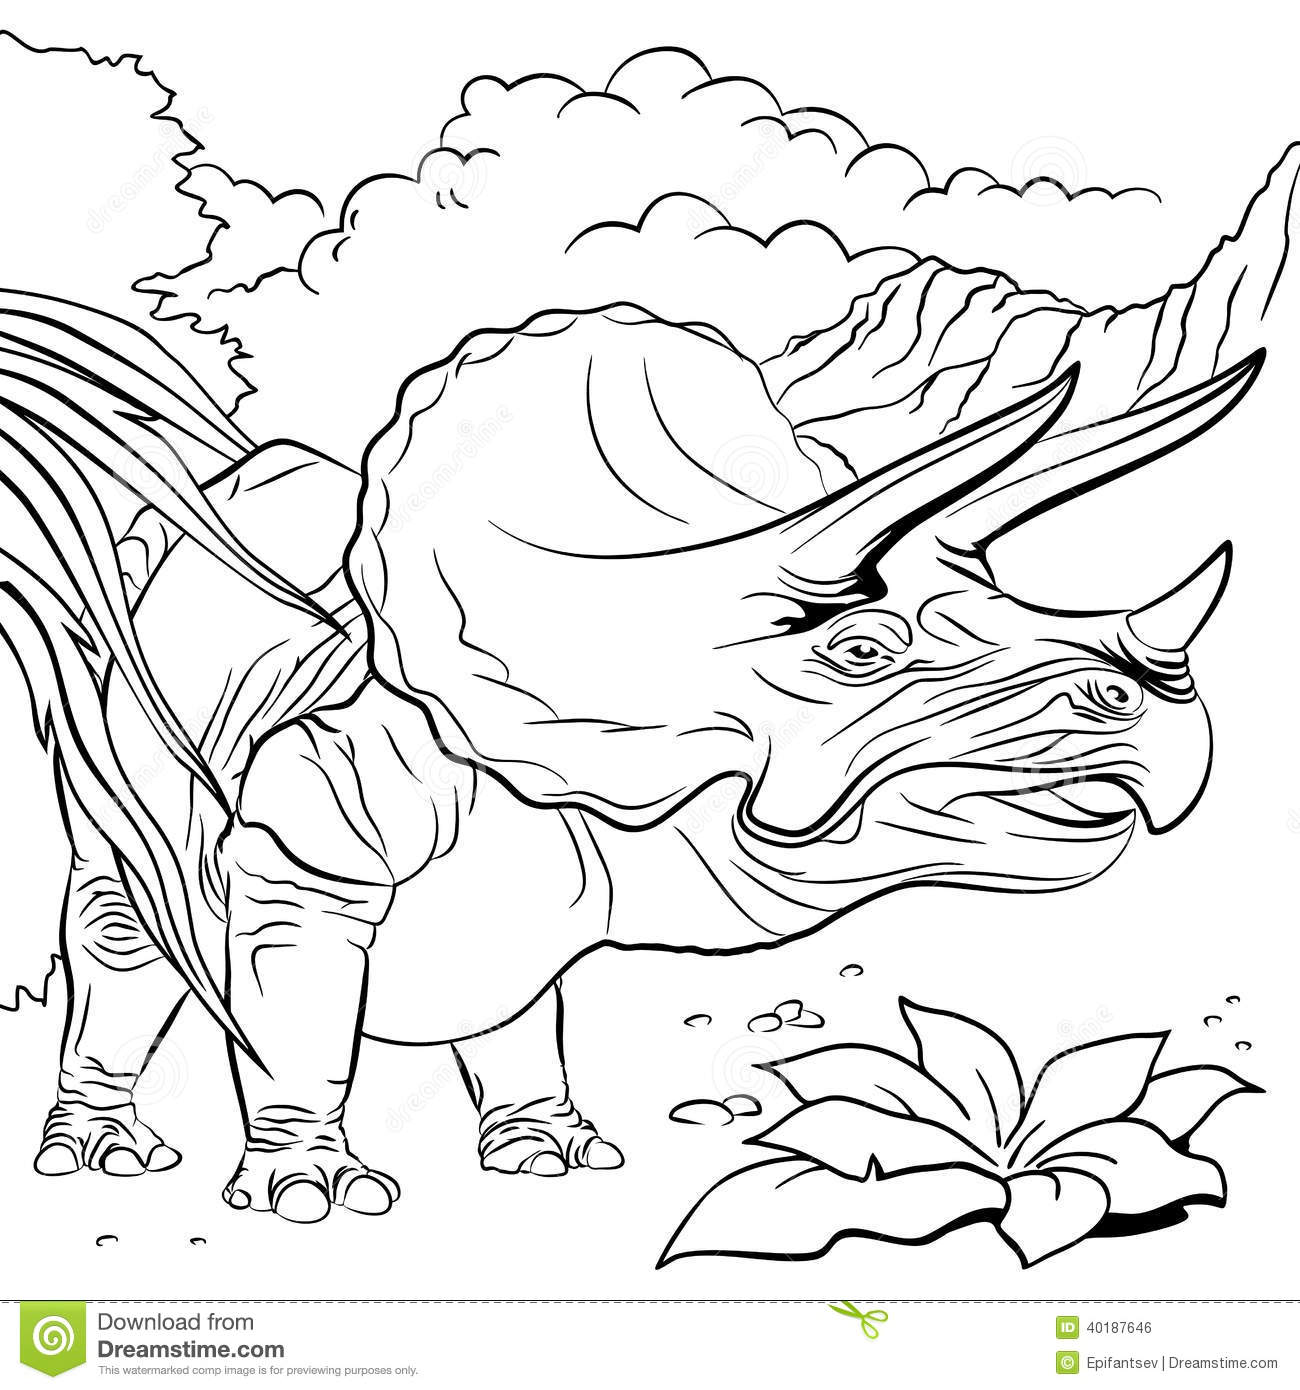 Triceratops dinosaur for coloring book illustration stock vector illustration of dinosaur - Dinausore dessin ...